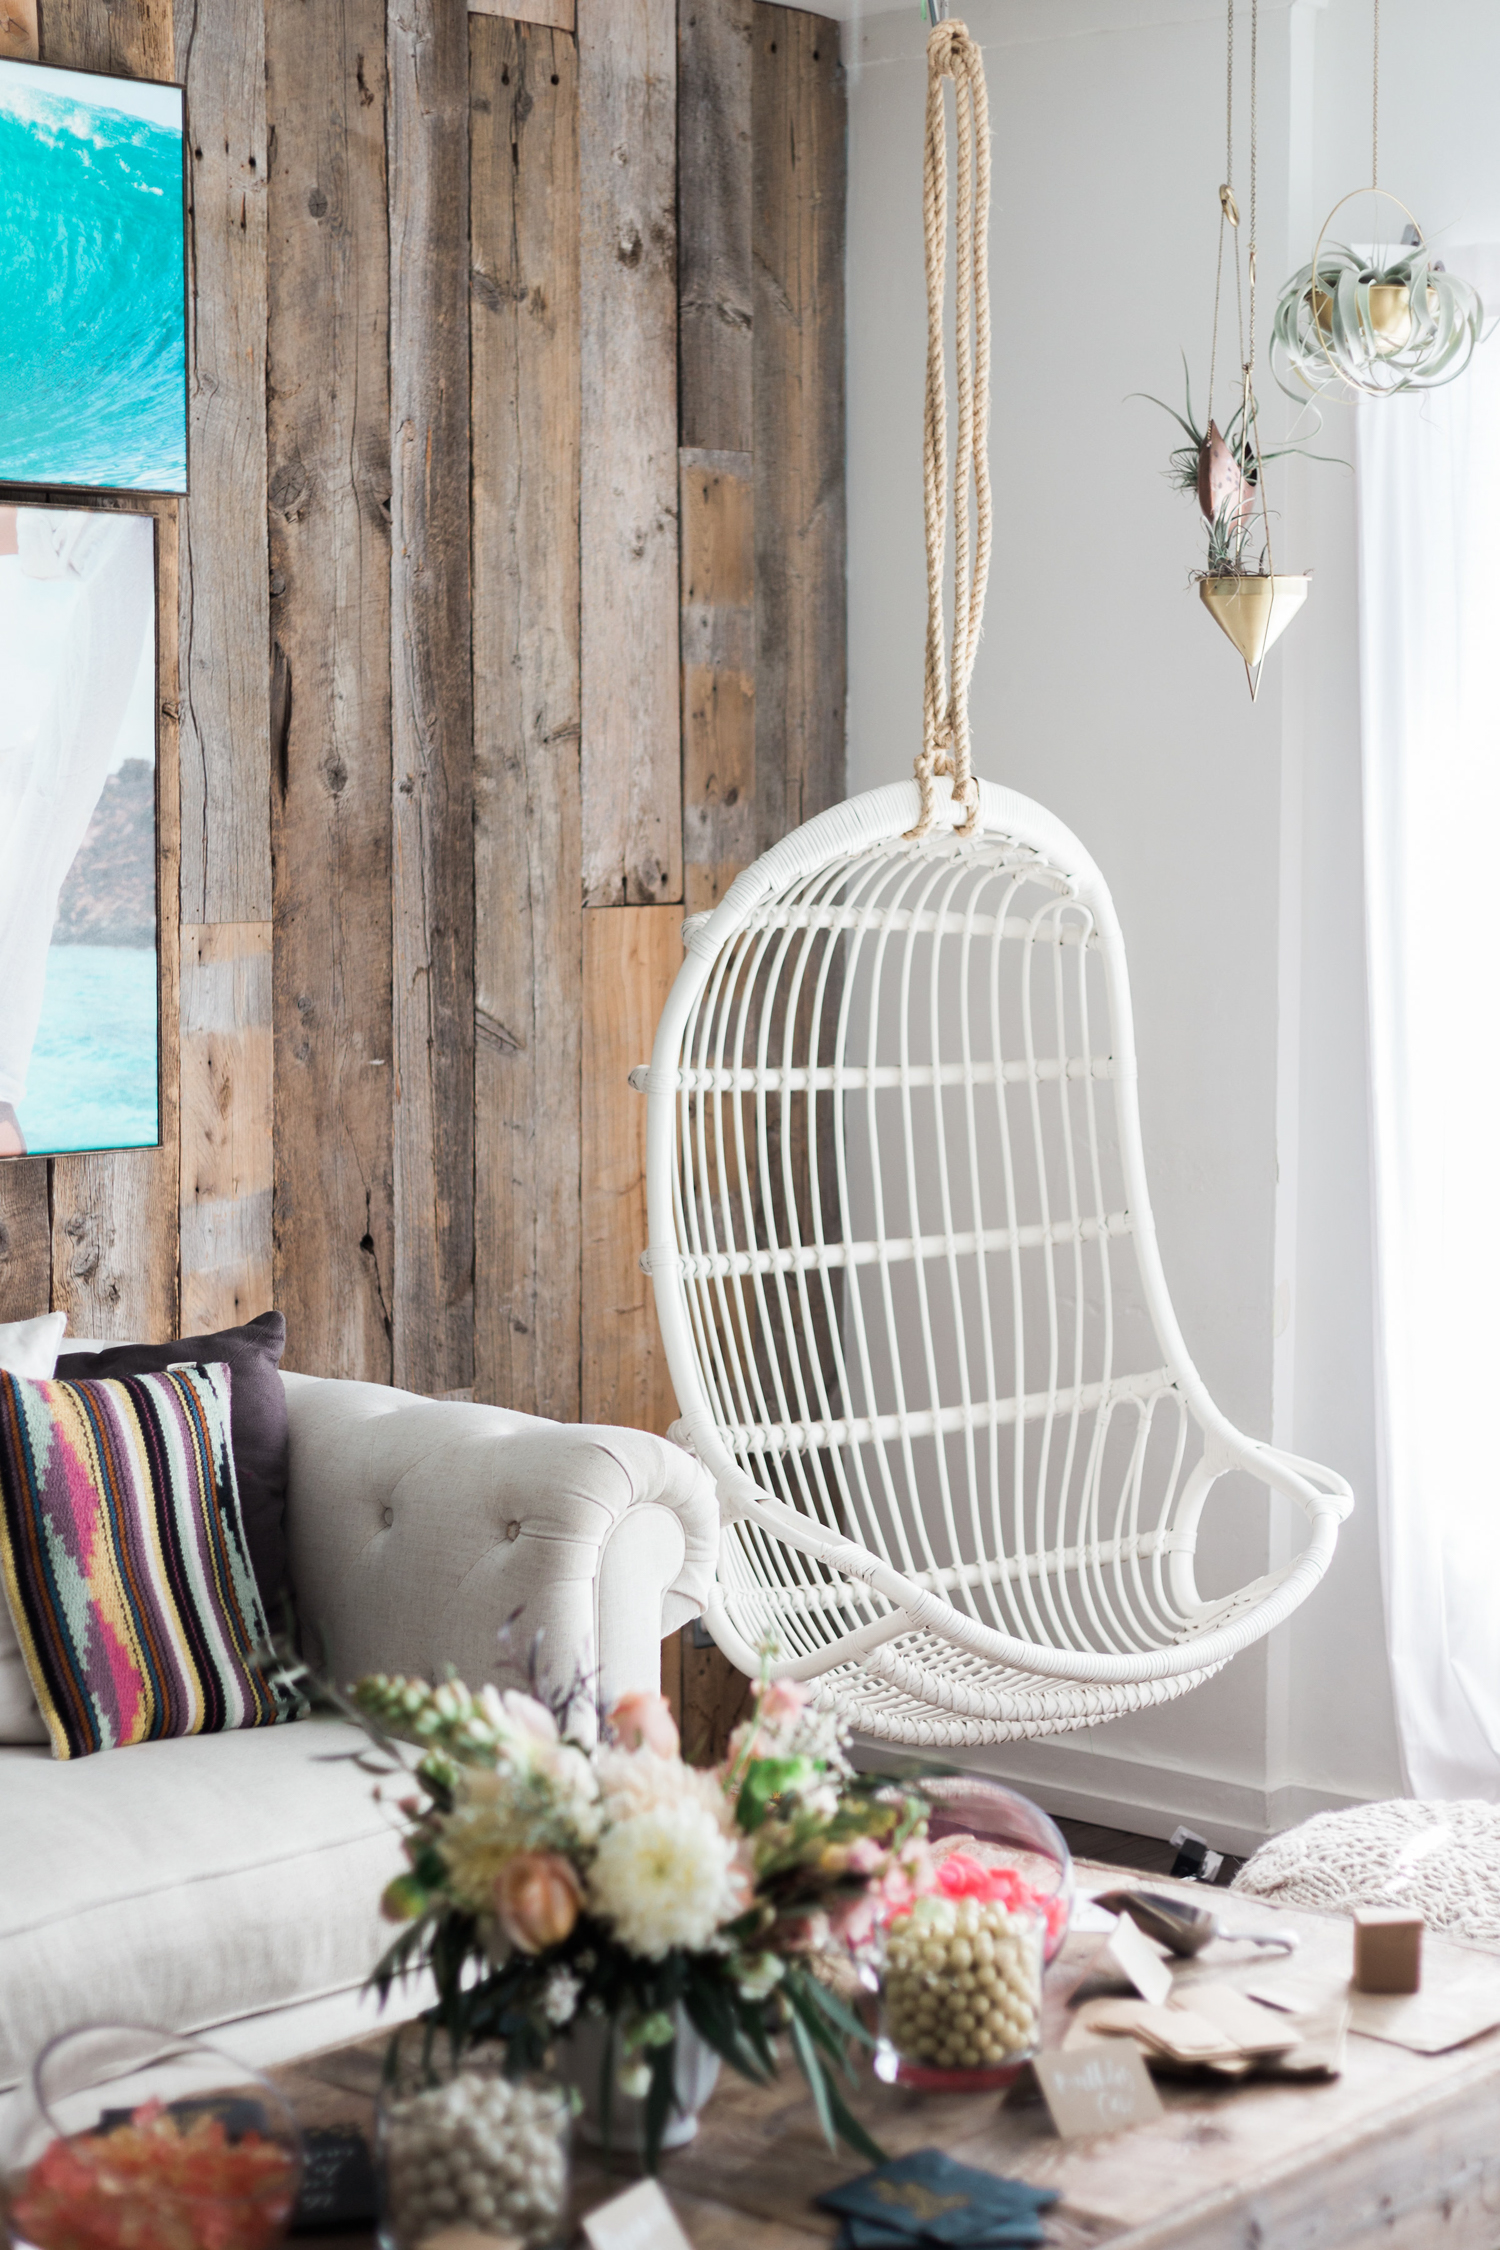 Beach bungalow swing chair | A Fabulous Fete